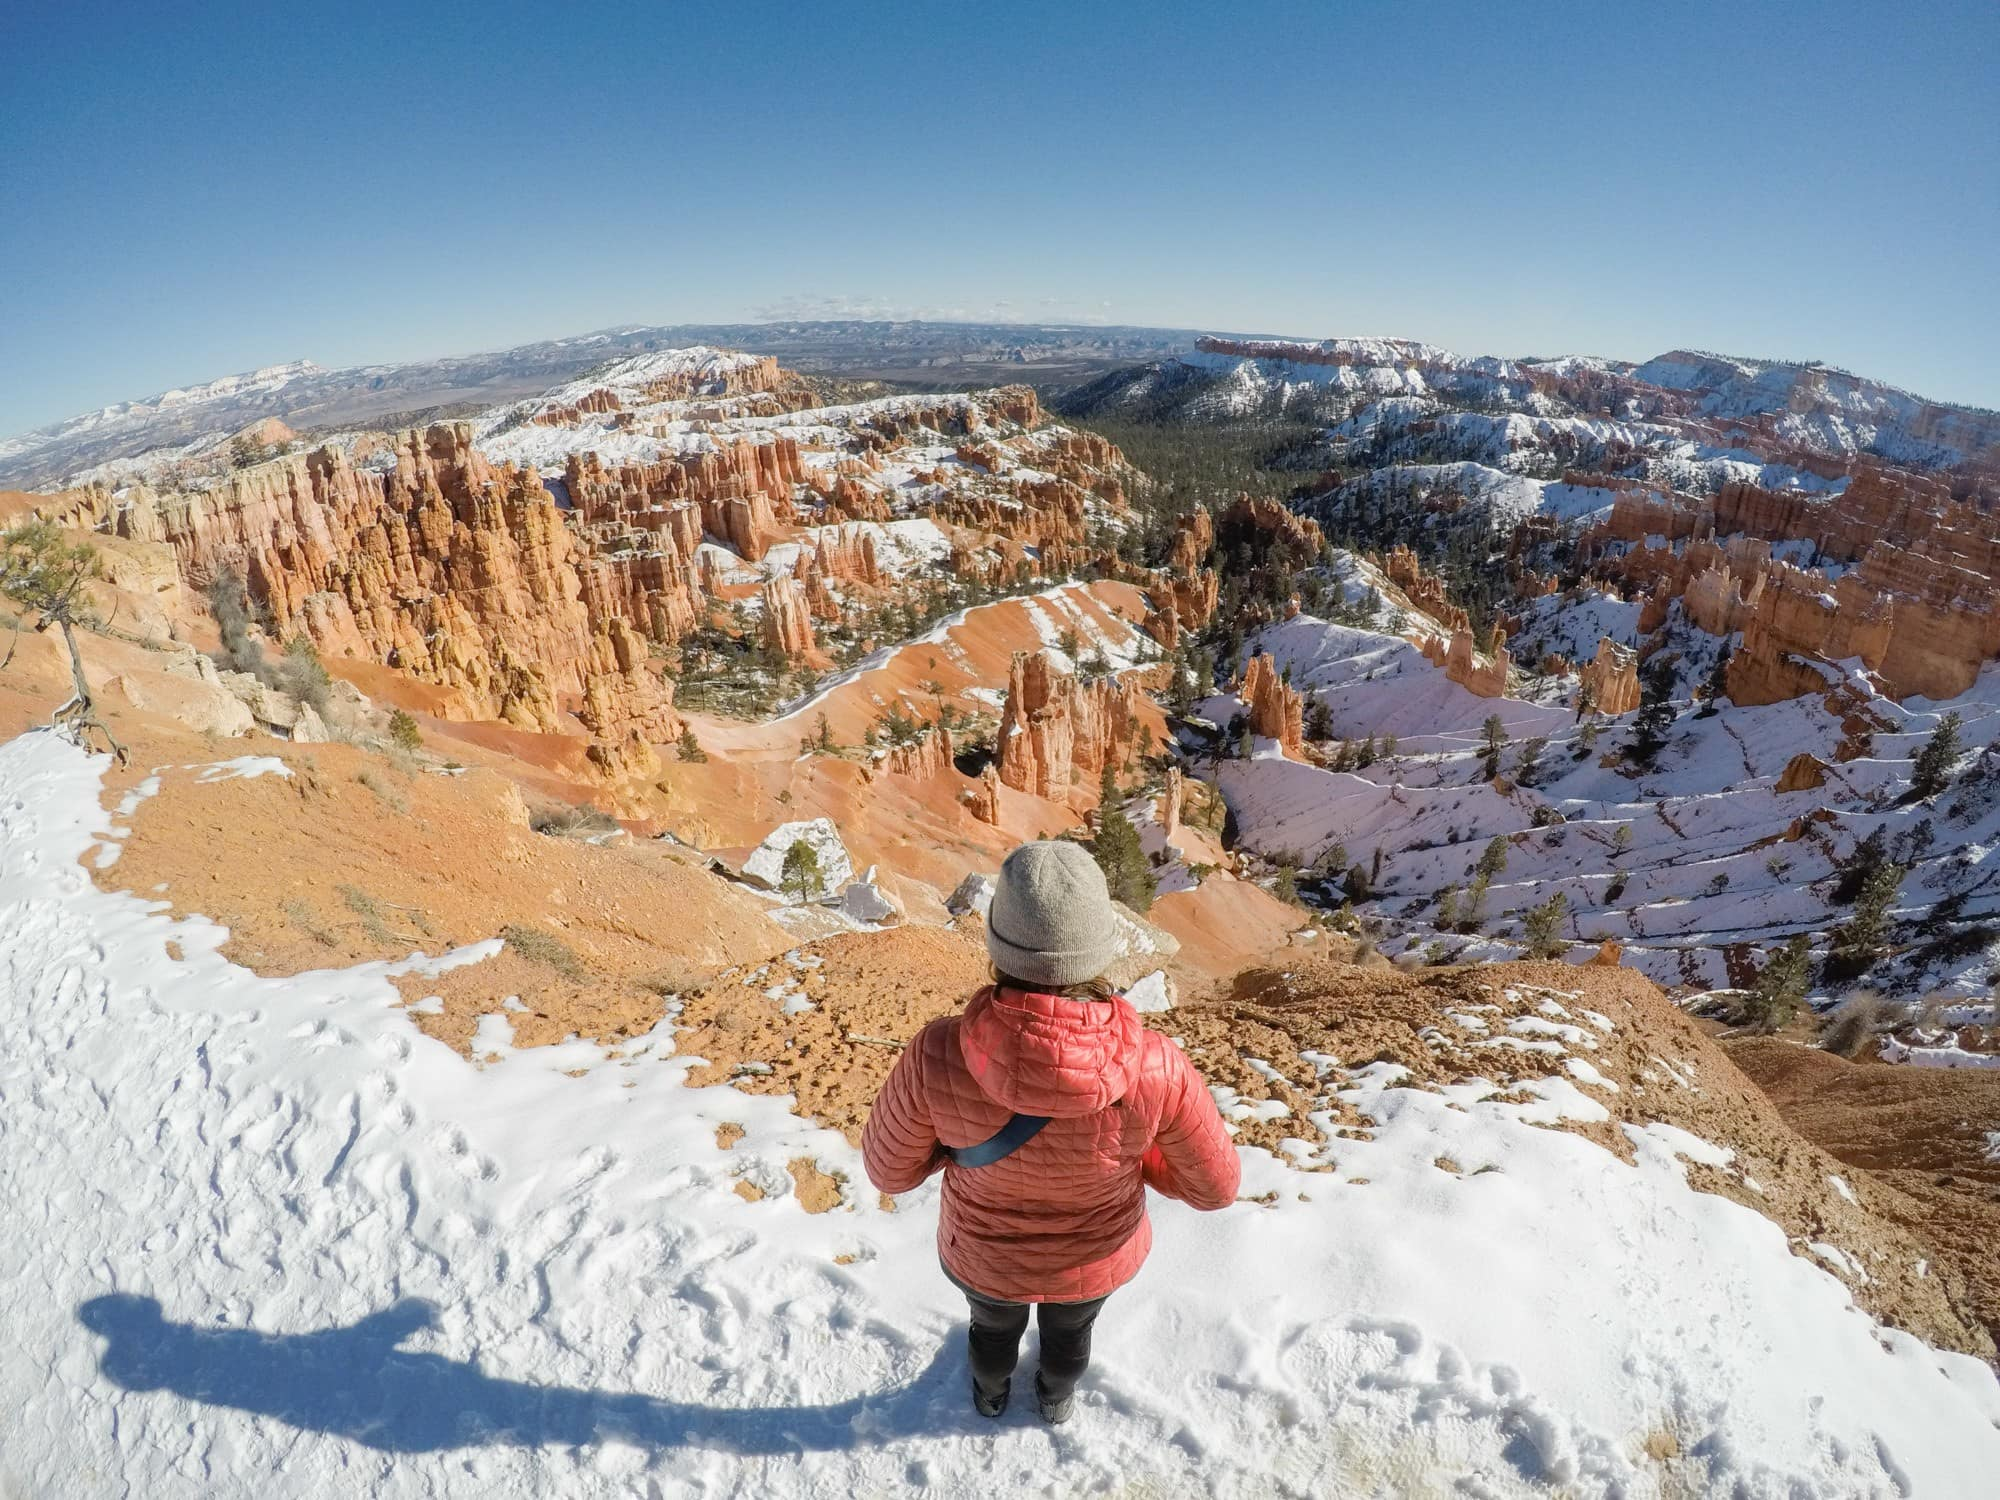 Bryce Canyon // Hit the slopes or cruise the coast with these top winter destinations for outdoor adventure whether you're looking for warm weather or snow.